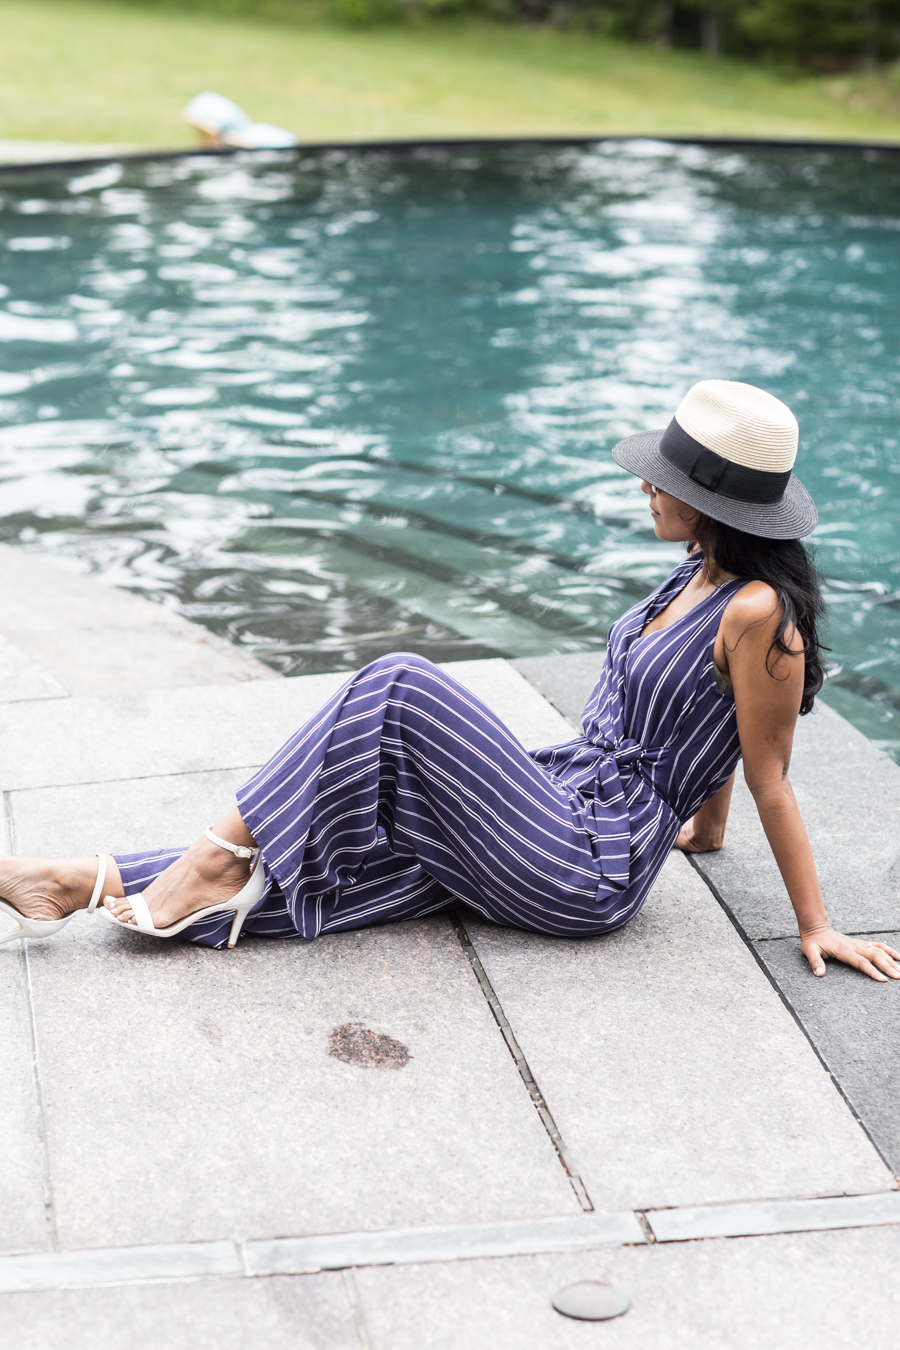 jumpsuits, summer style, petite fashion, nordstrom, nordstrom sale, pool style, vacay style, feminine style, petite blogger, maine travel guide